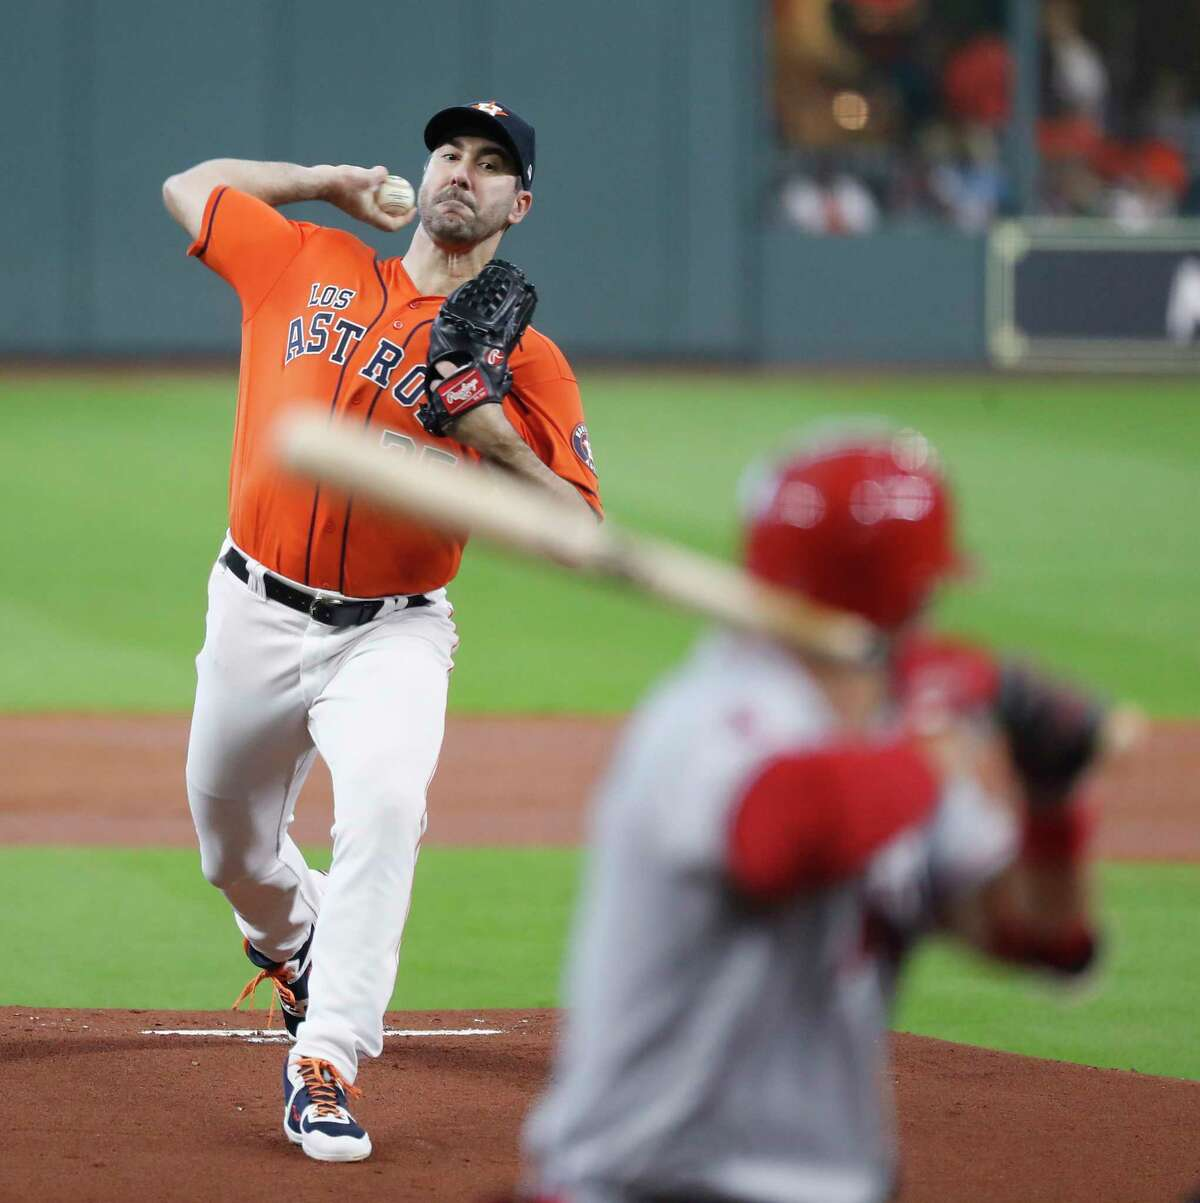 Houston Astros starting pitcher Justin Verlander (35) faces Los Angeles Angels David Fletcher (6) in the first inning of an MLB baseball game at Minute Maid Park, Sunday, Sept. 22, 2019, in Houston.